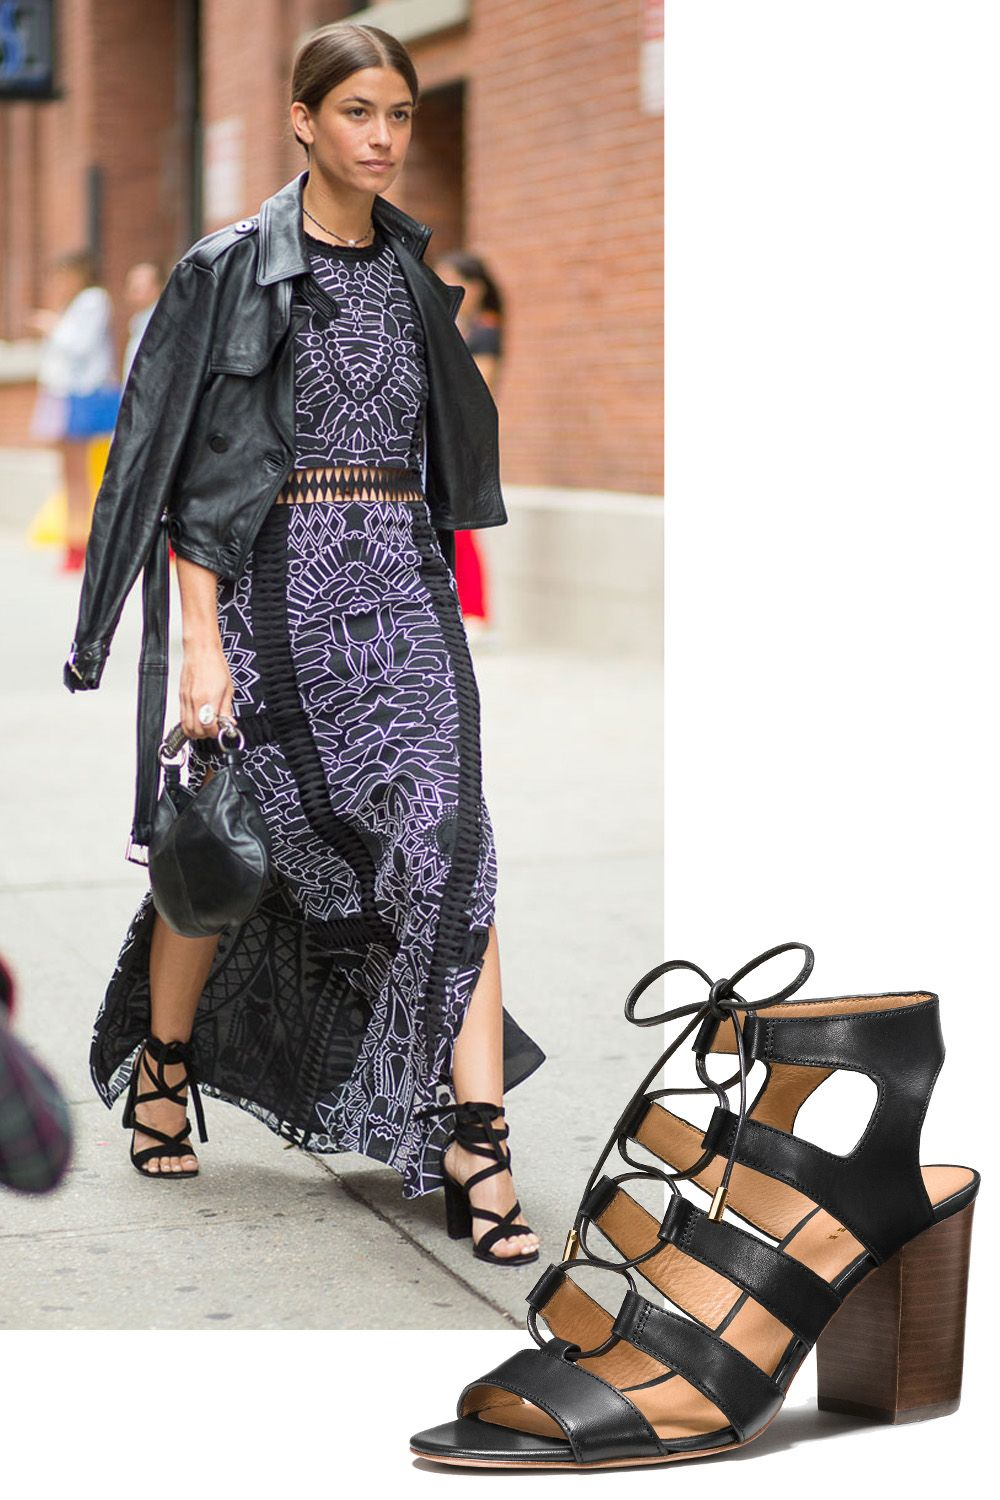 "<p>You can't ever go wrong with a plain black high-heeled sandal, but a pair that laces gives any outfit an instant upgrade. </p><p><em>Coach Larissa Heel, $225, <a rel=""noskim"" href=""http://www.coach.com/coach-designer-sandals-larissa-heel/Q8266.html?CID=D_B_HBZ_10595"" target=""_blank"">coach.com</a></em></p>"